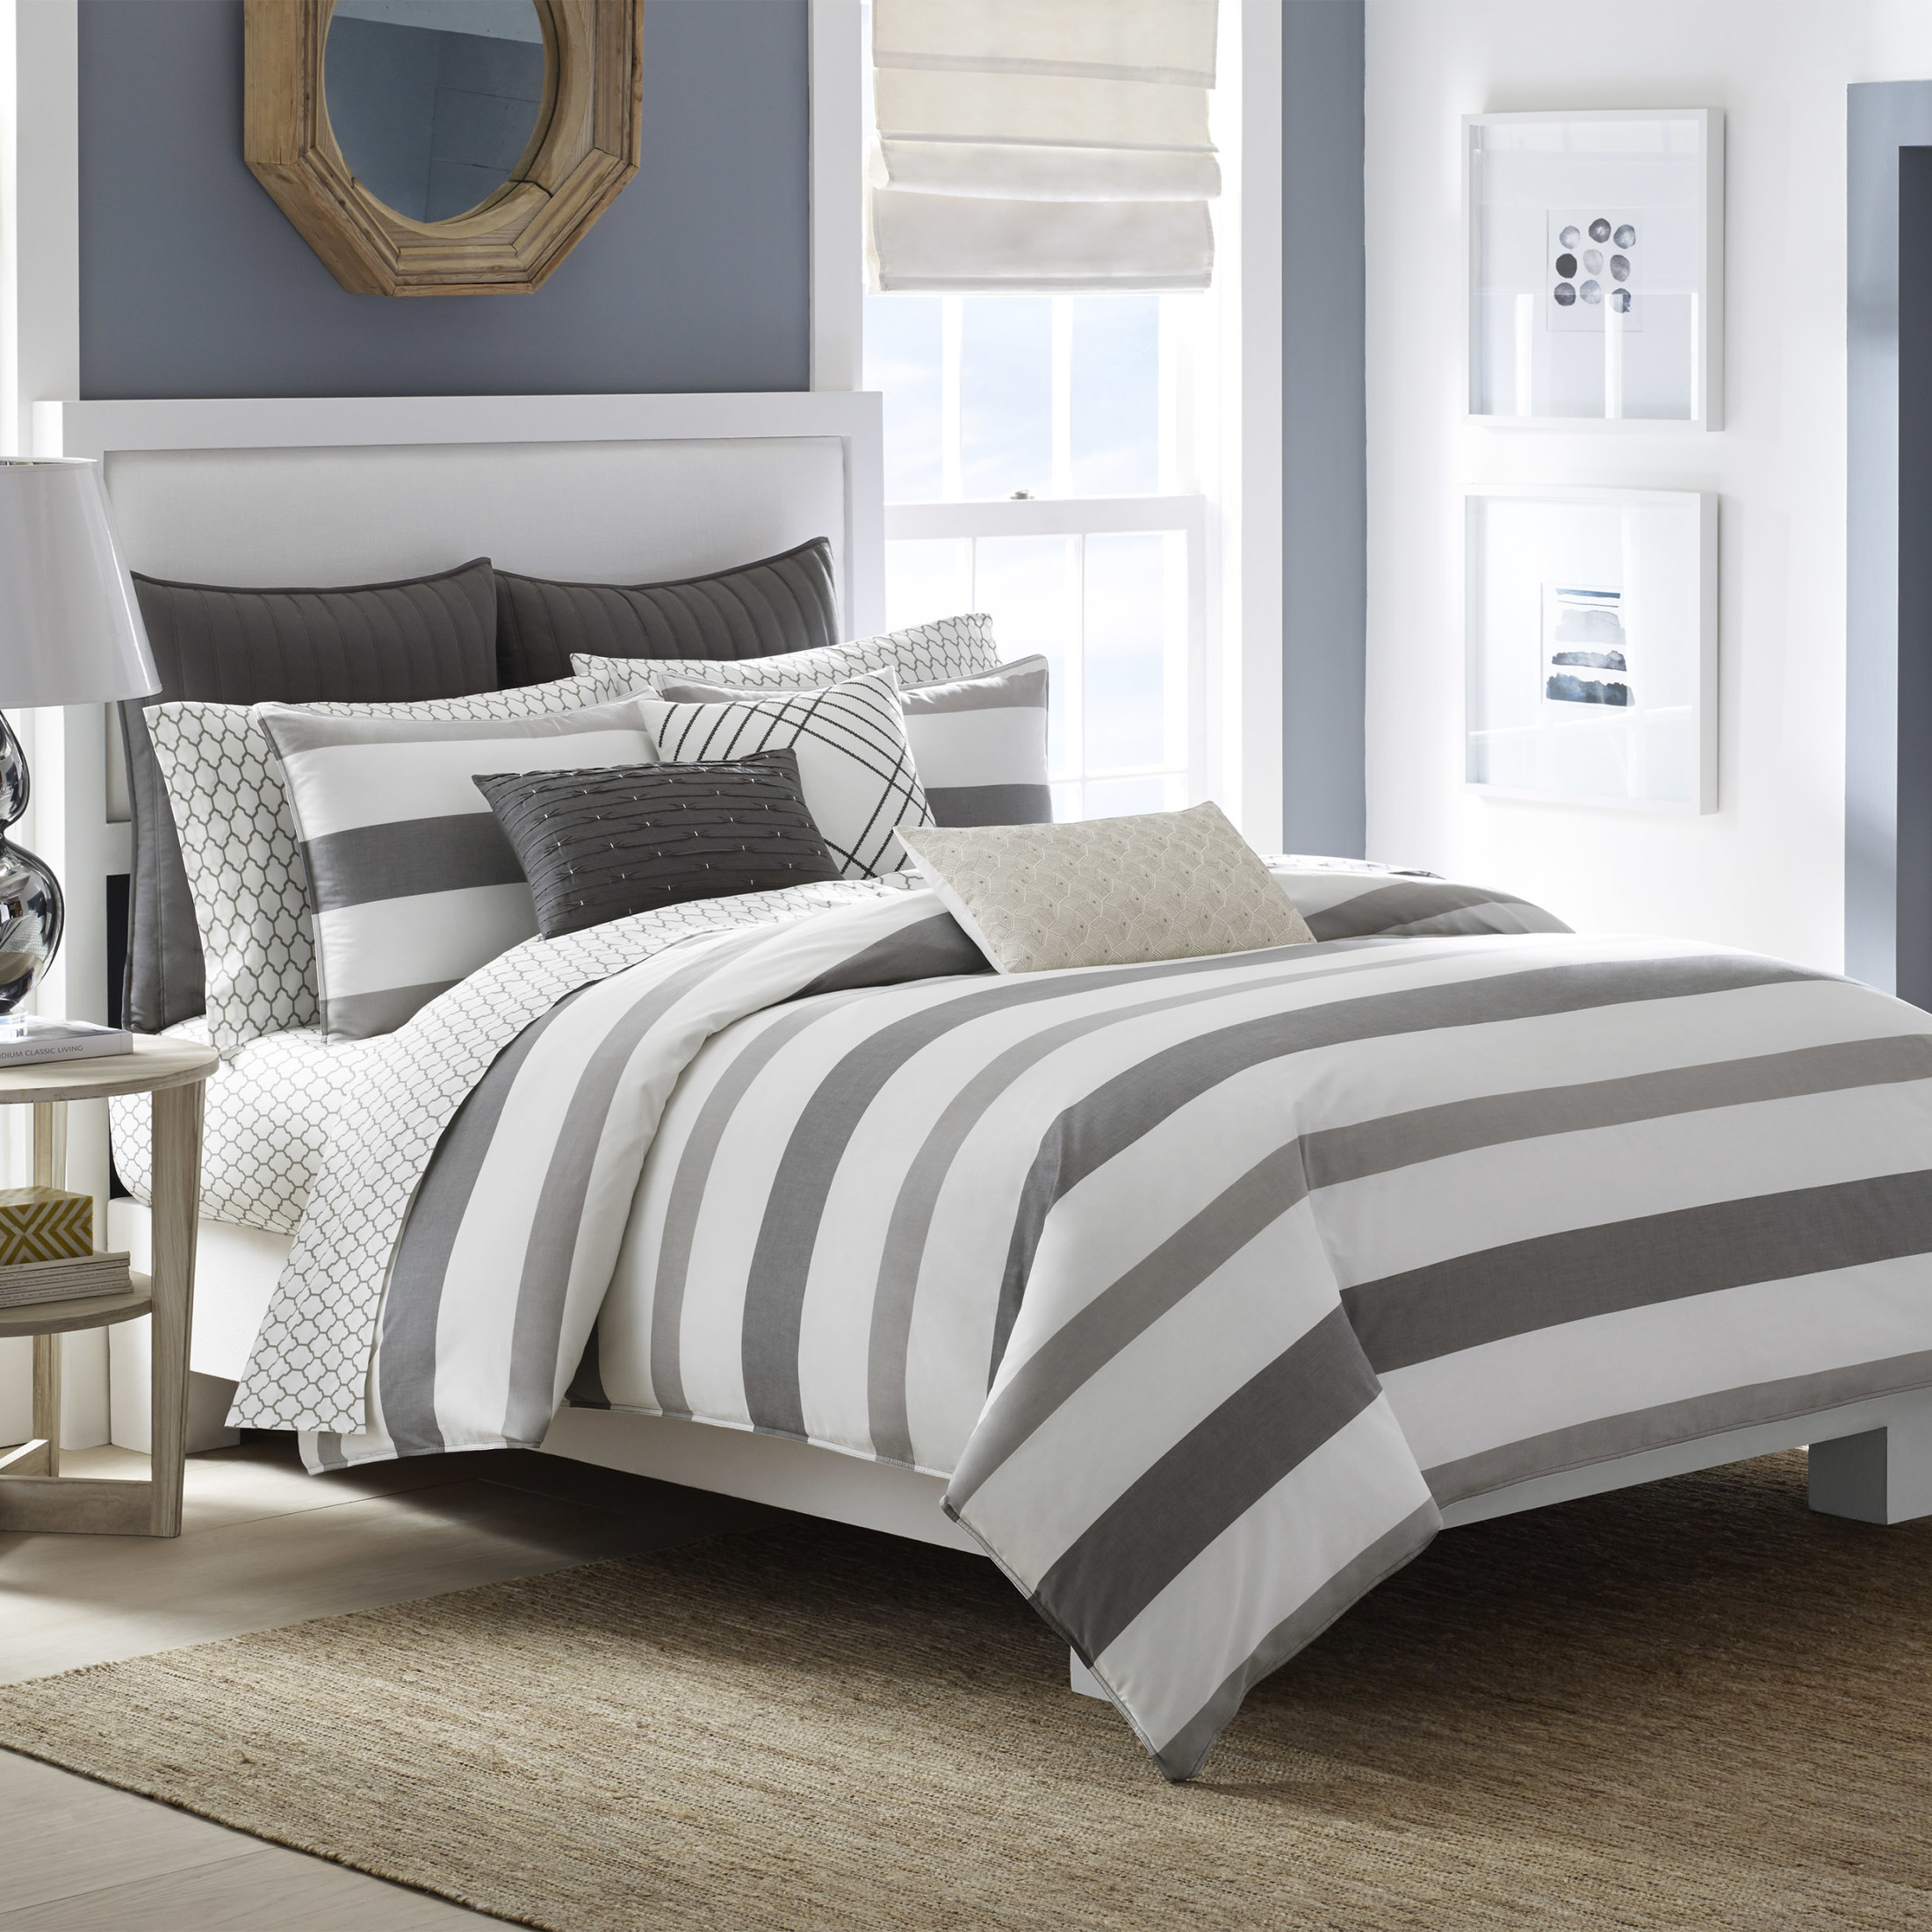 Queen Comforters | Queen Bedding Sets | Bed Bath and Beyond Comforter Sets